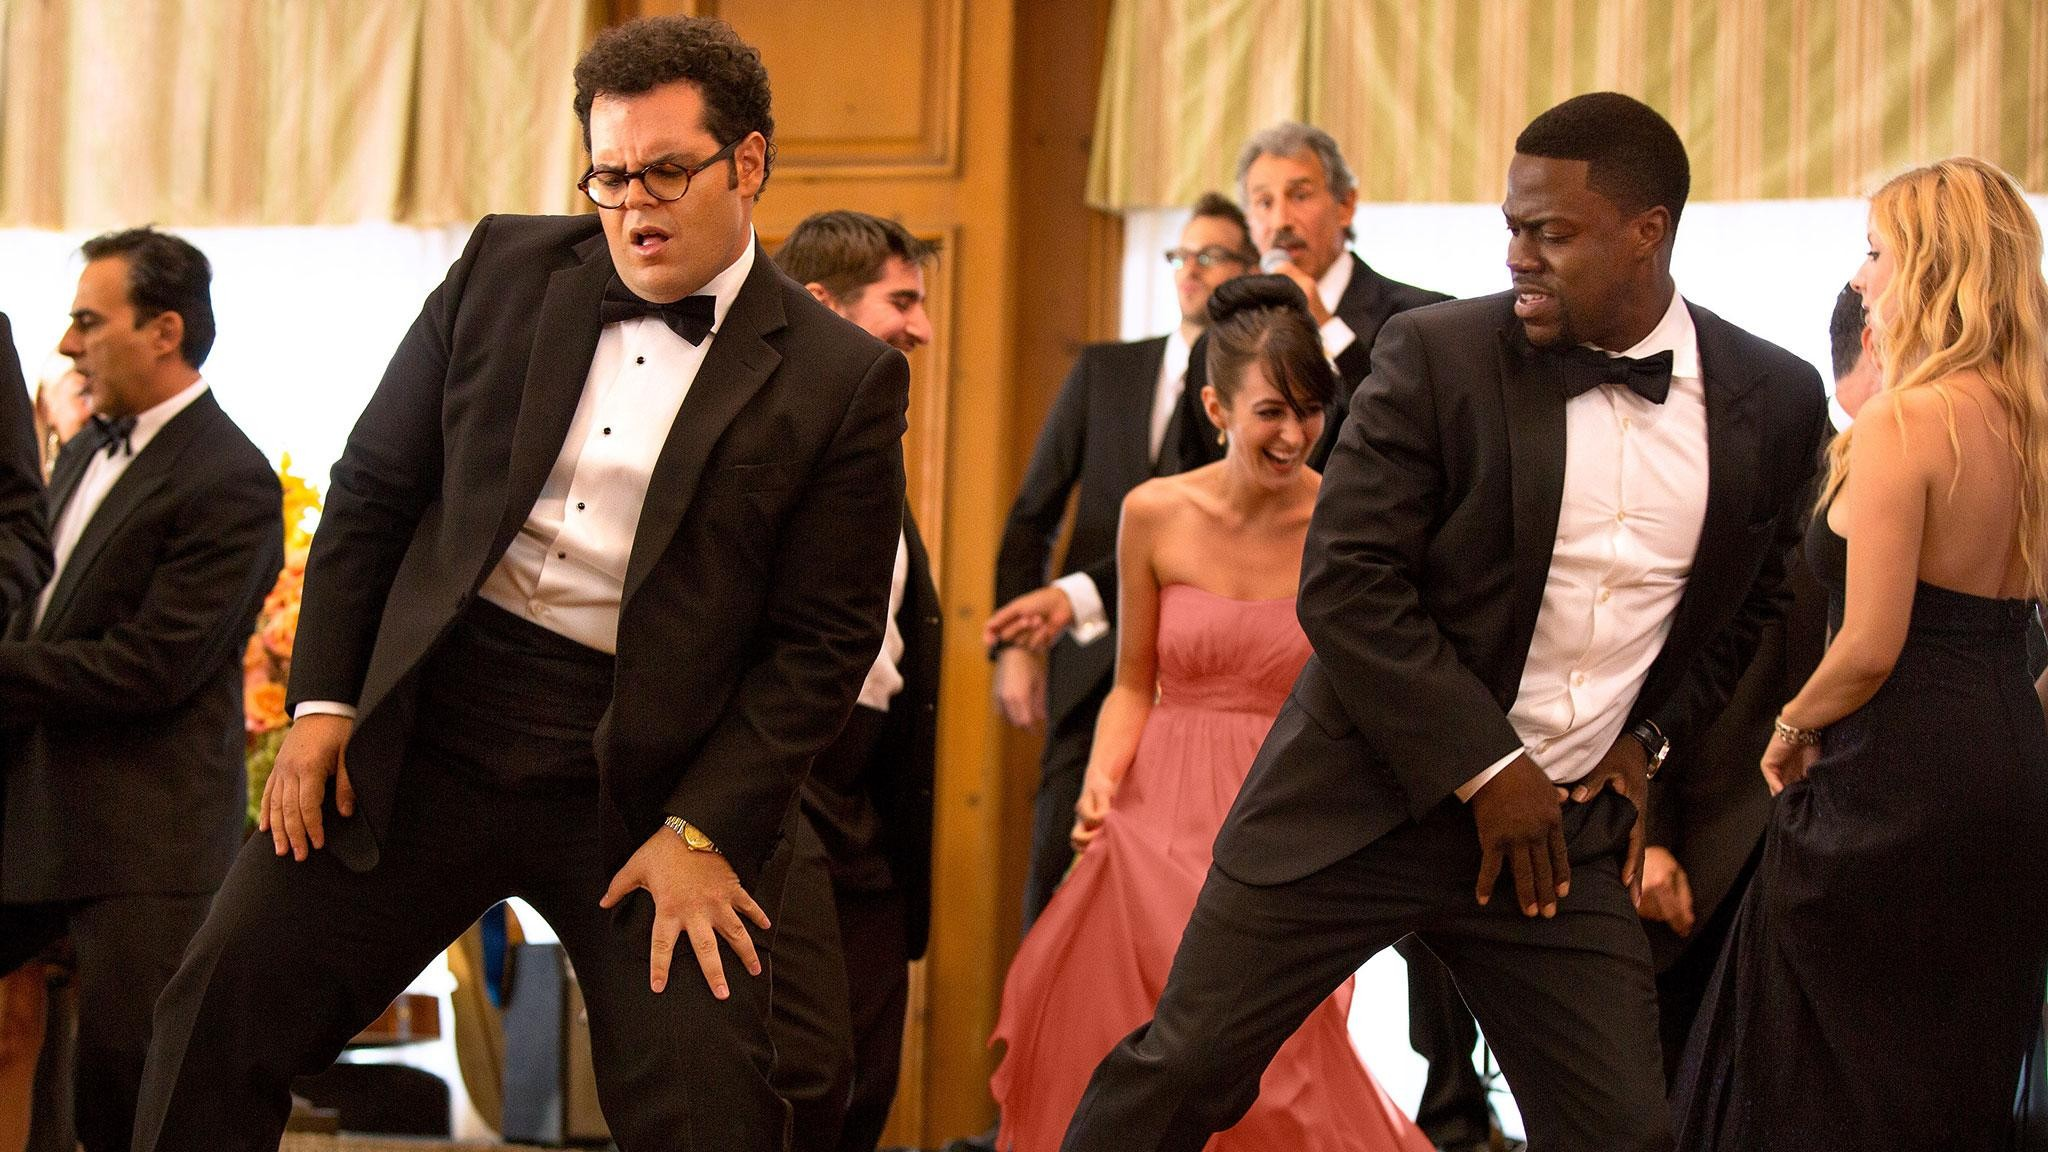 Here S A Look At The Bachelor Party Scene From The Wedding Ringer Heyuguys